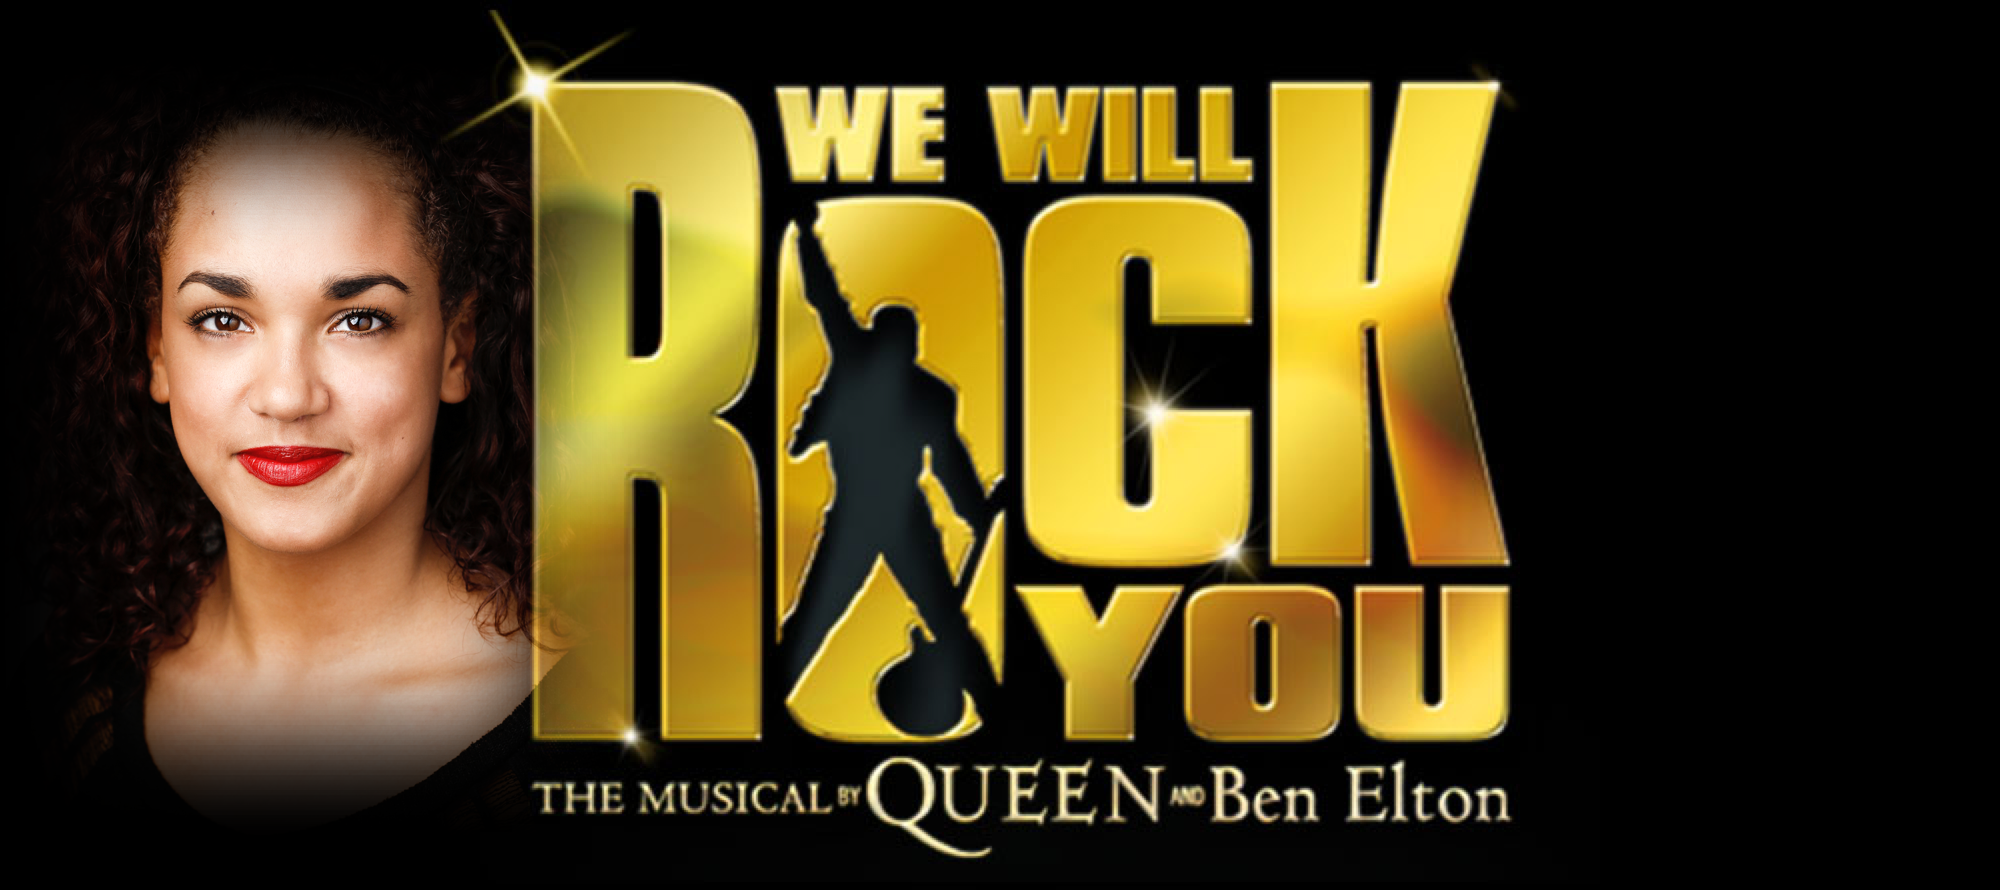 Georgia Briggs appears in We Will Rock You in Germany